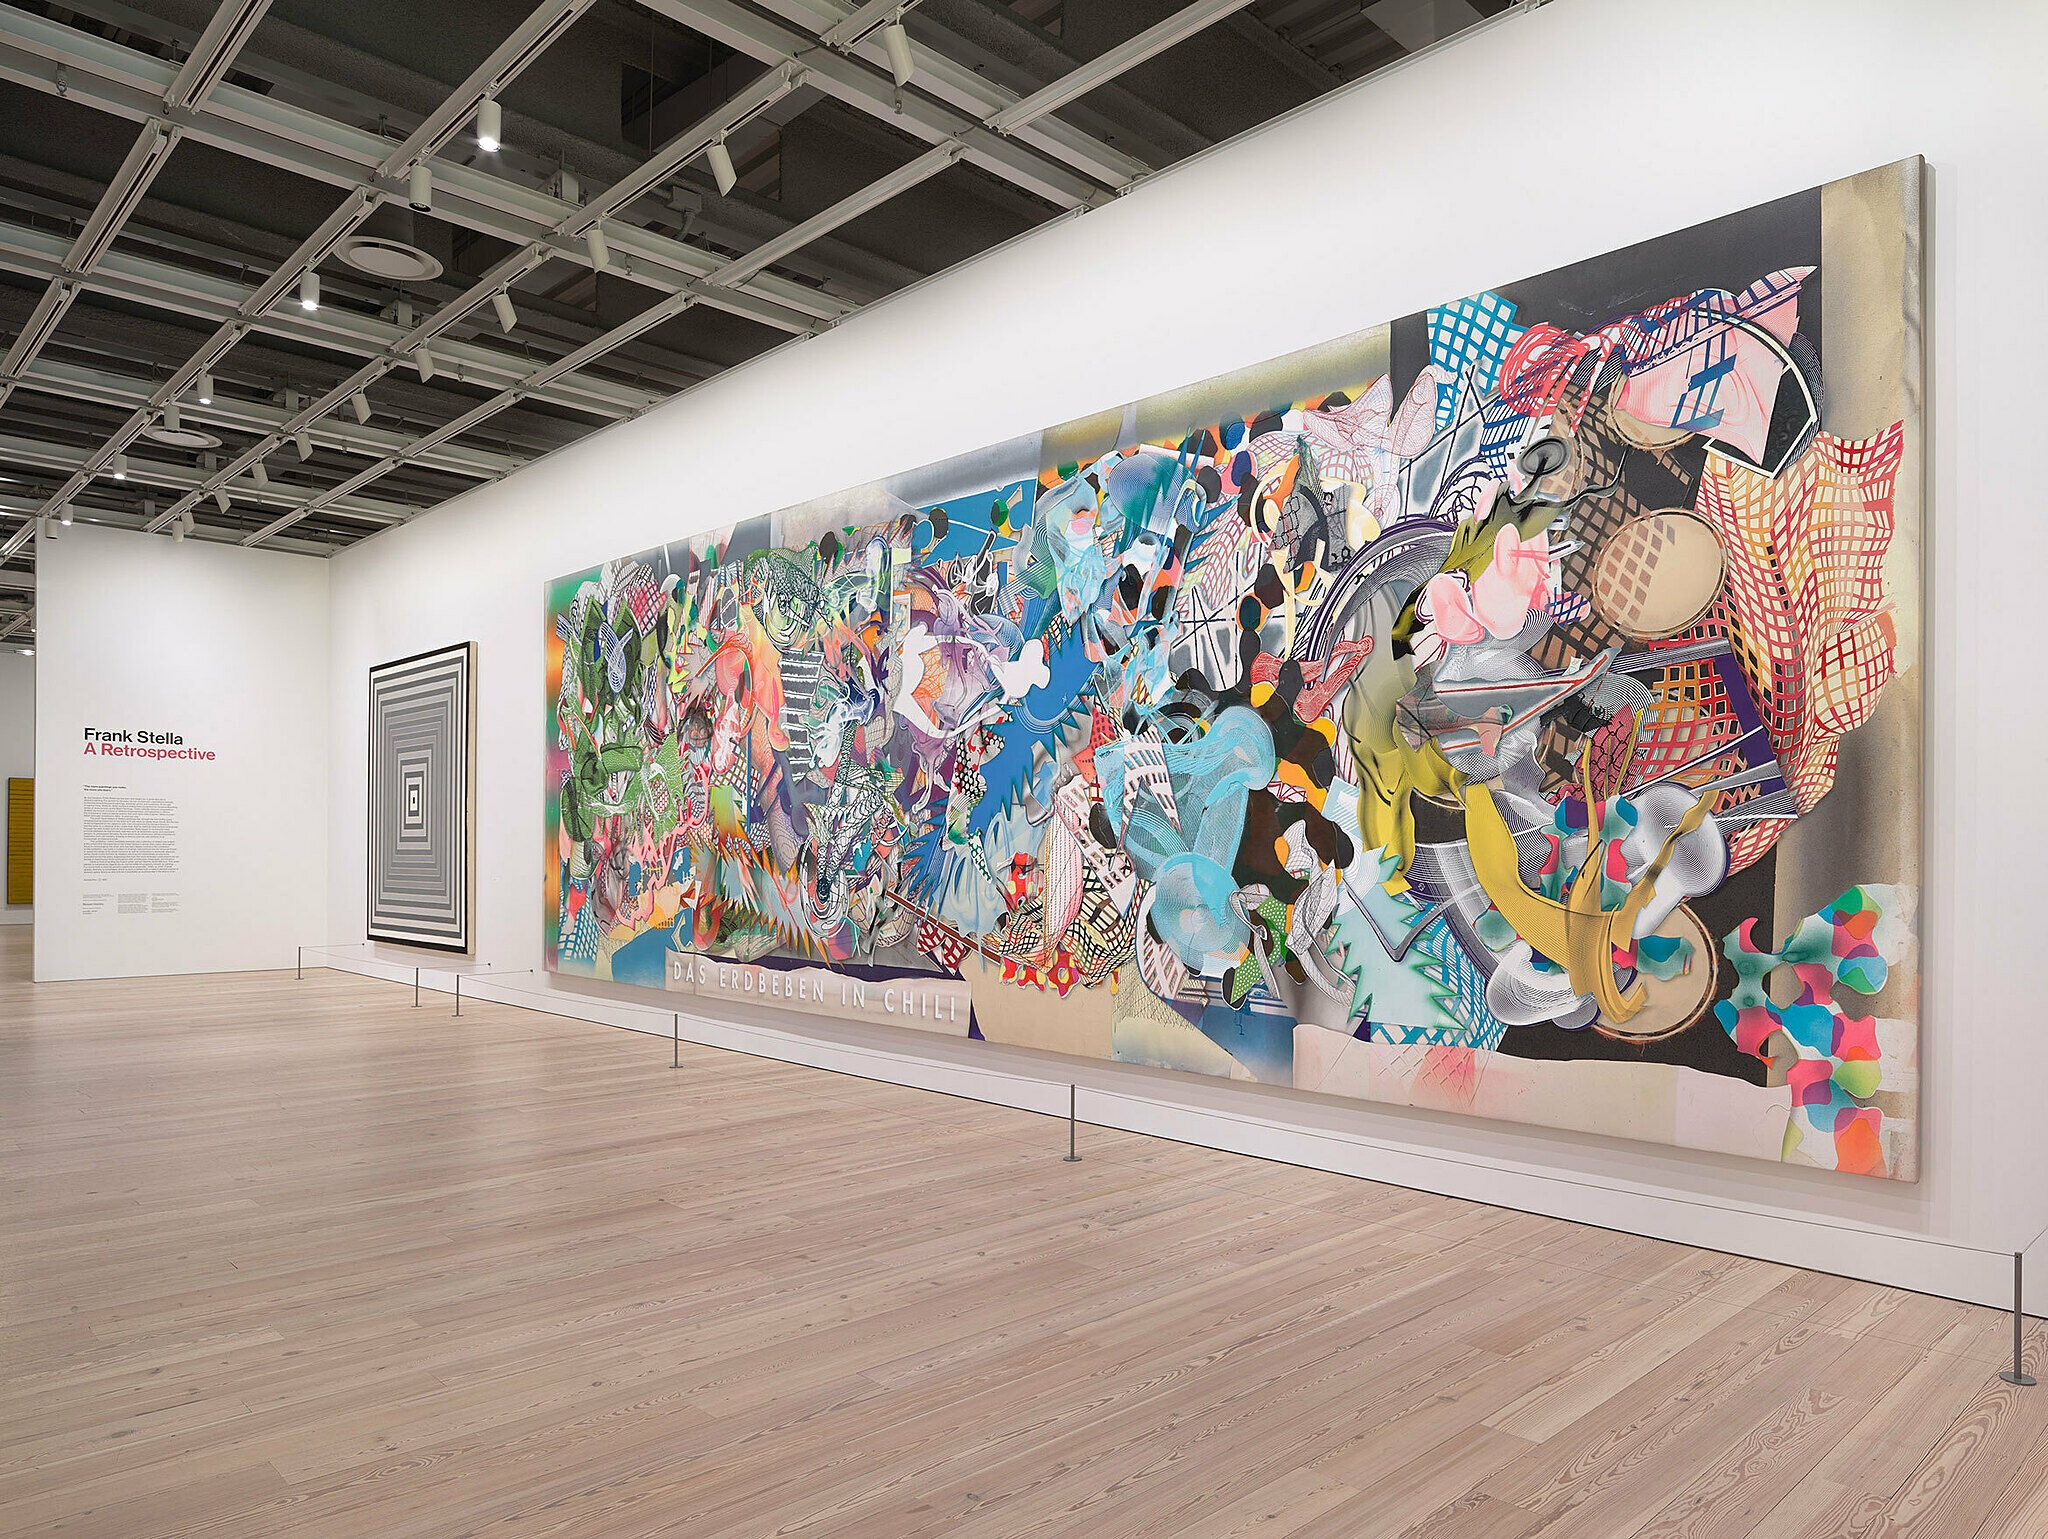 A large painting covers an entire wall of an exhibition.